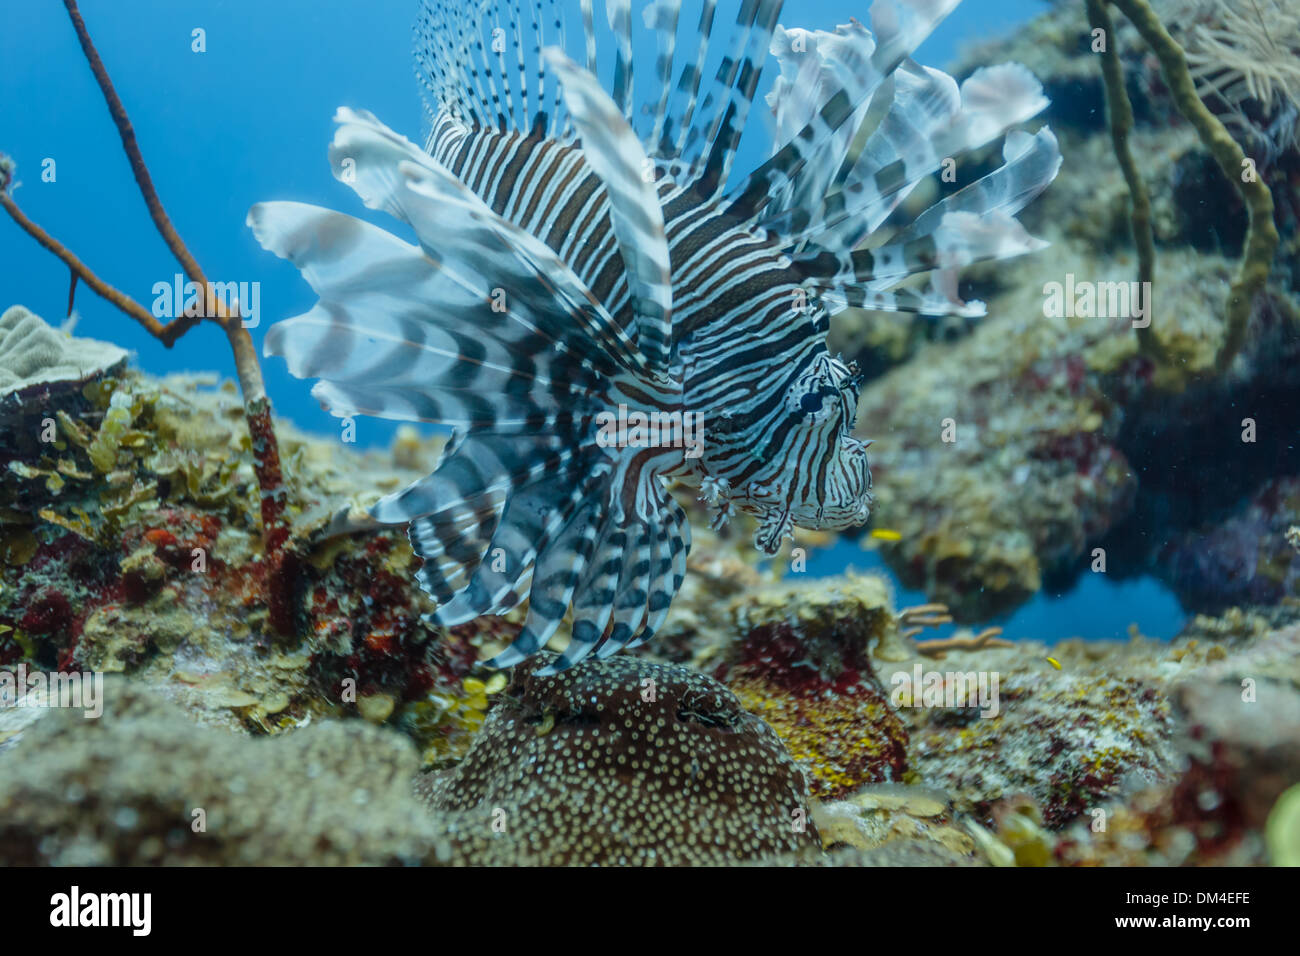 Lionfish displays full array of tentacles on coral reef in Belize - Stock Image